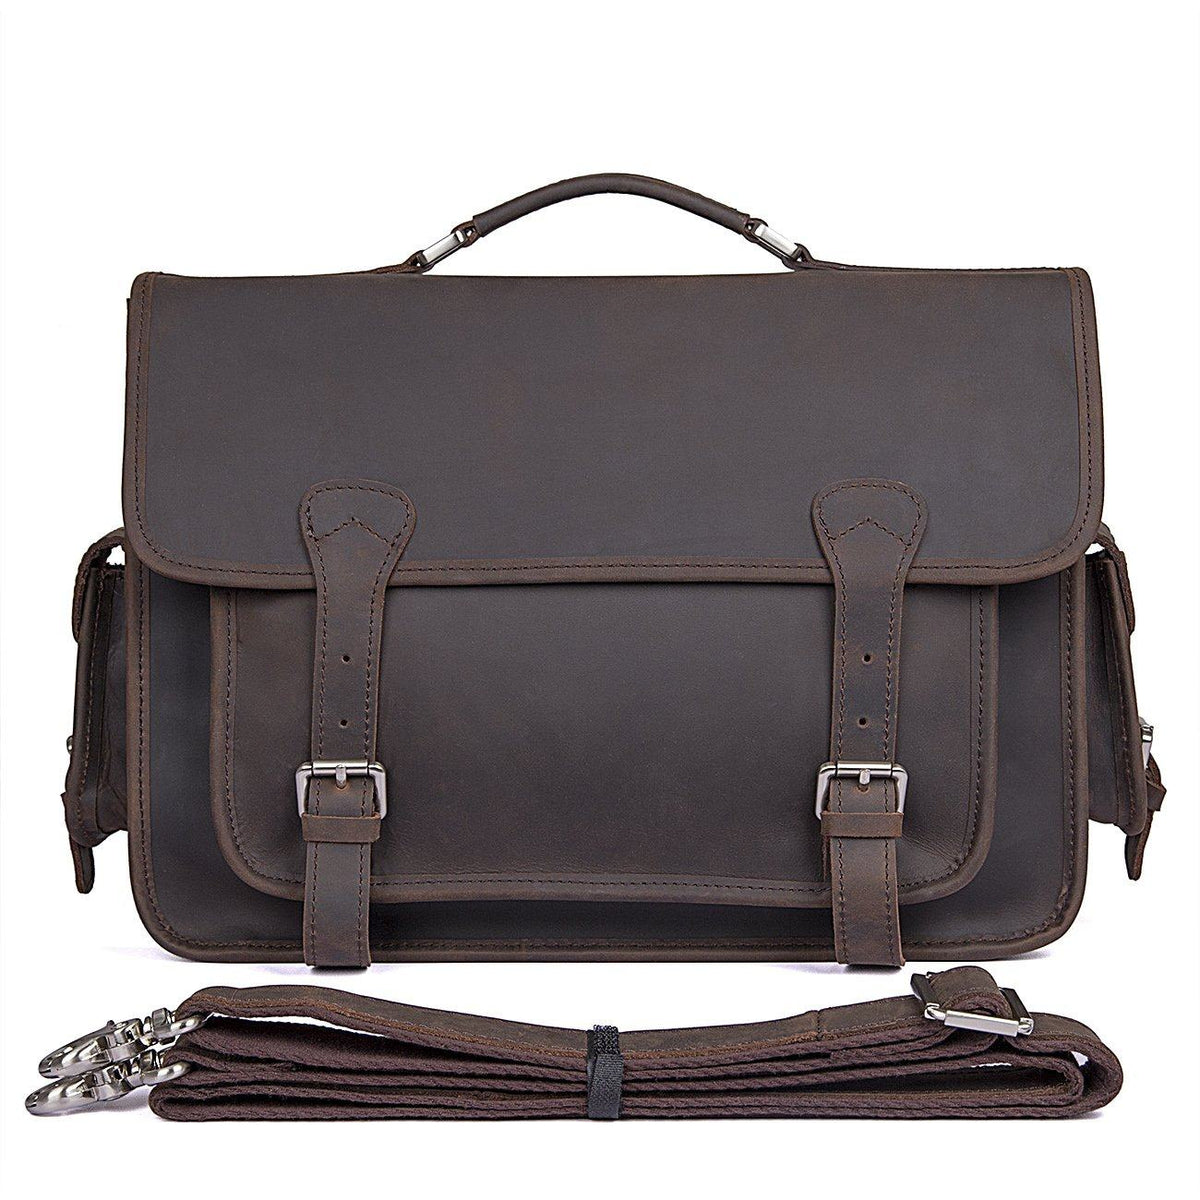 Leather Briefcase - Saddle Leather Briefcase, Rustic, Vintage